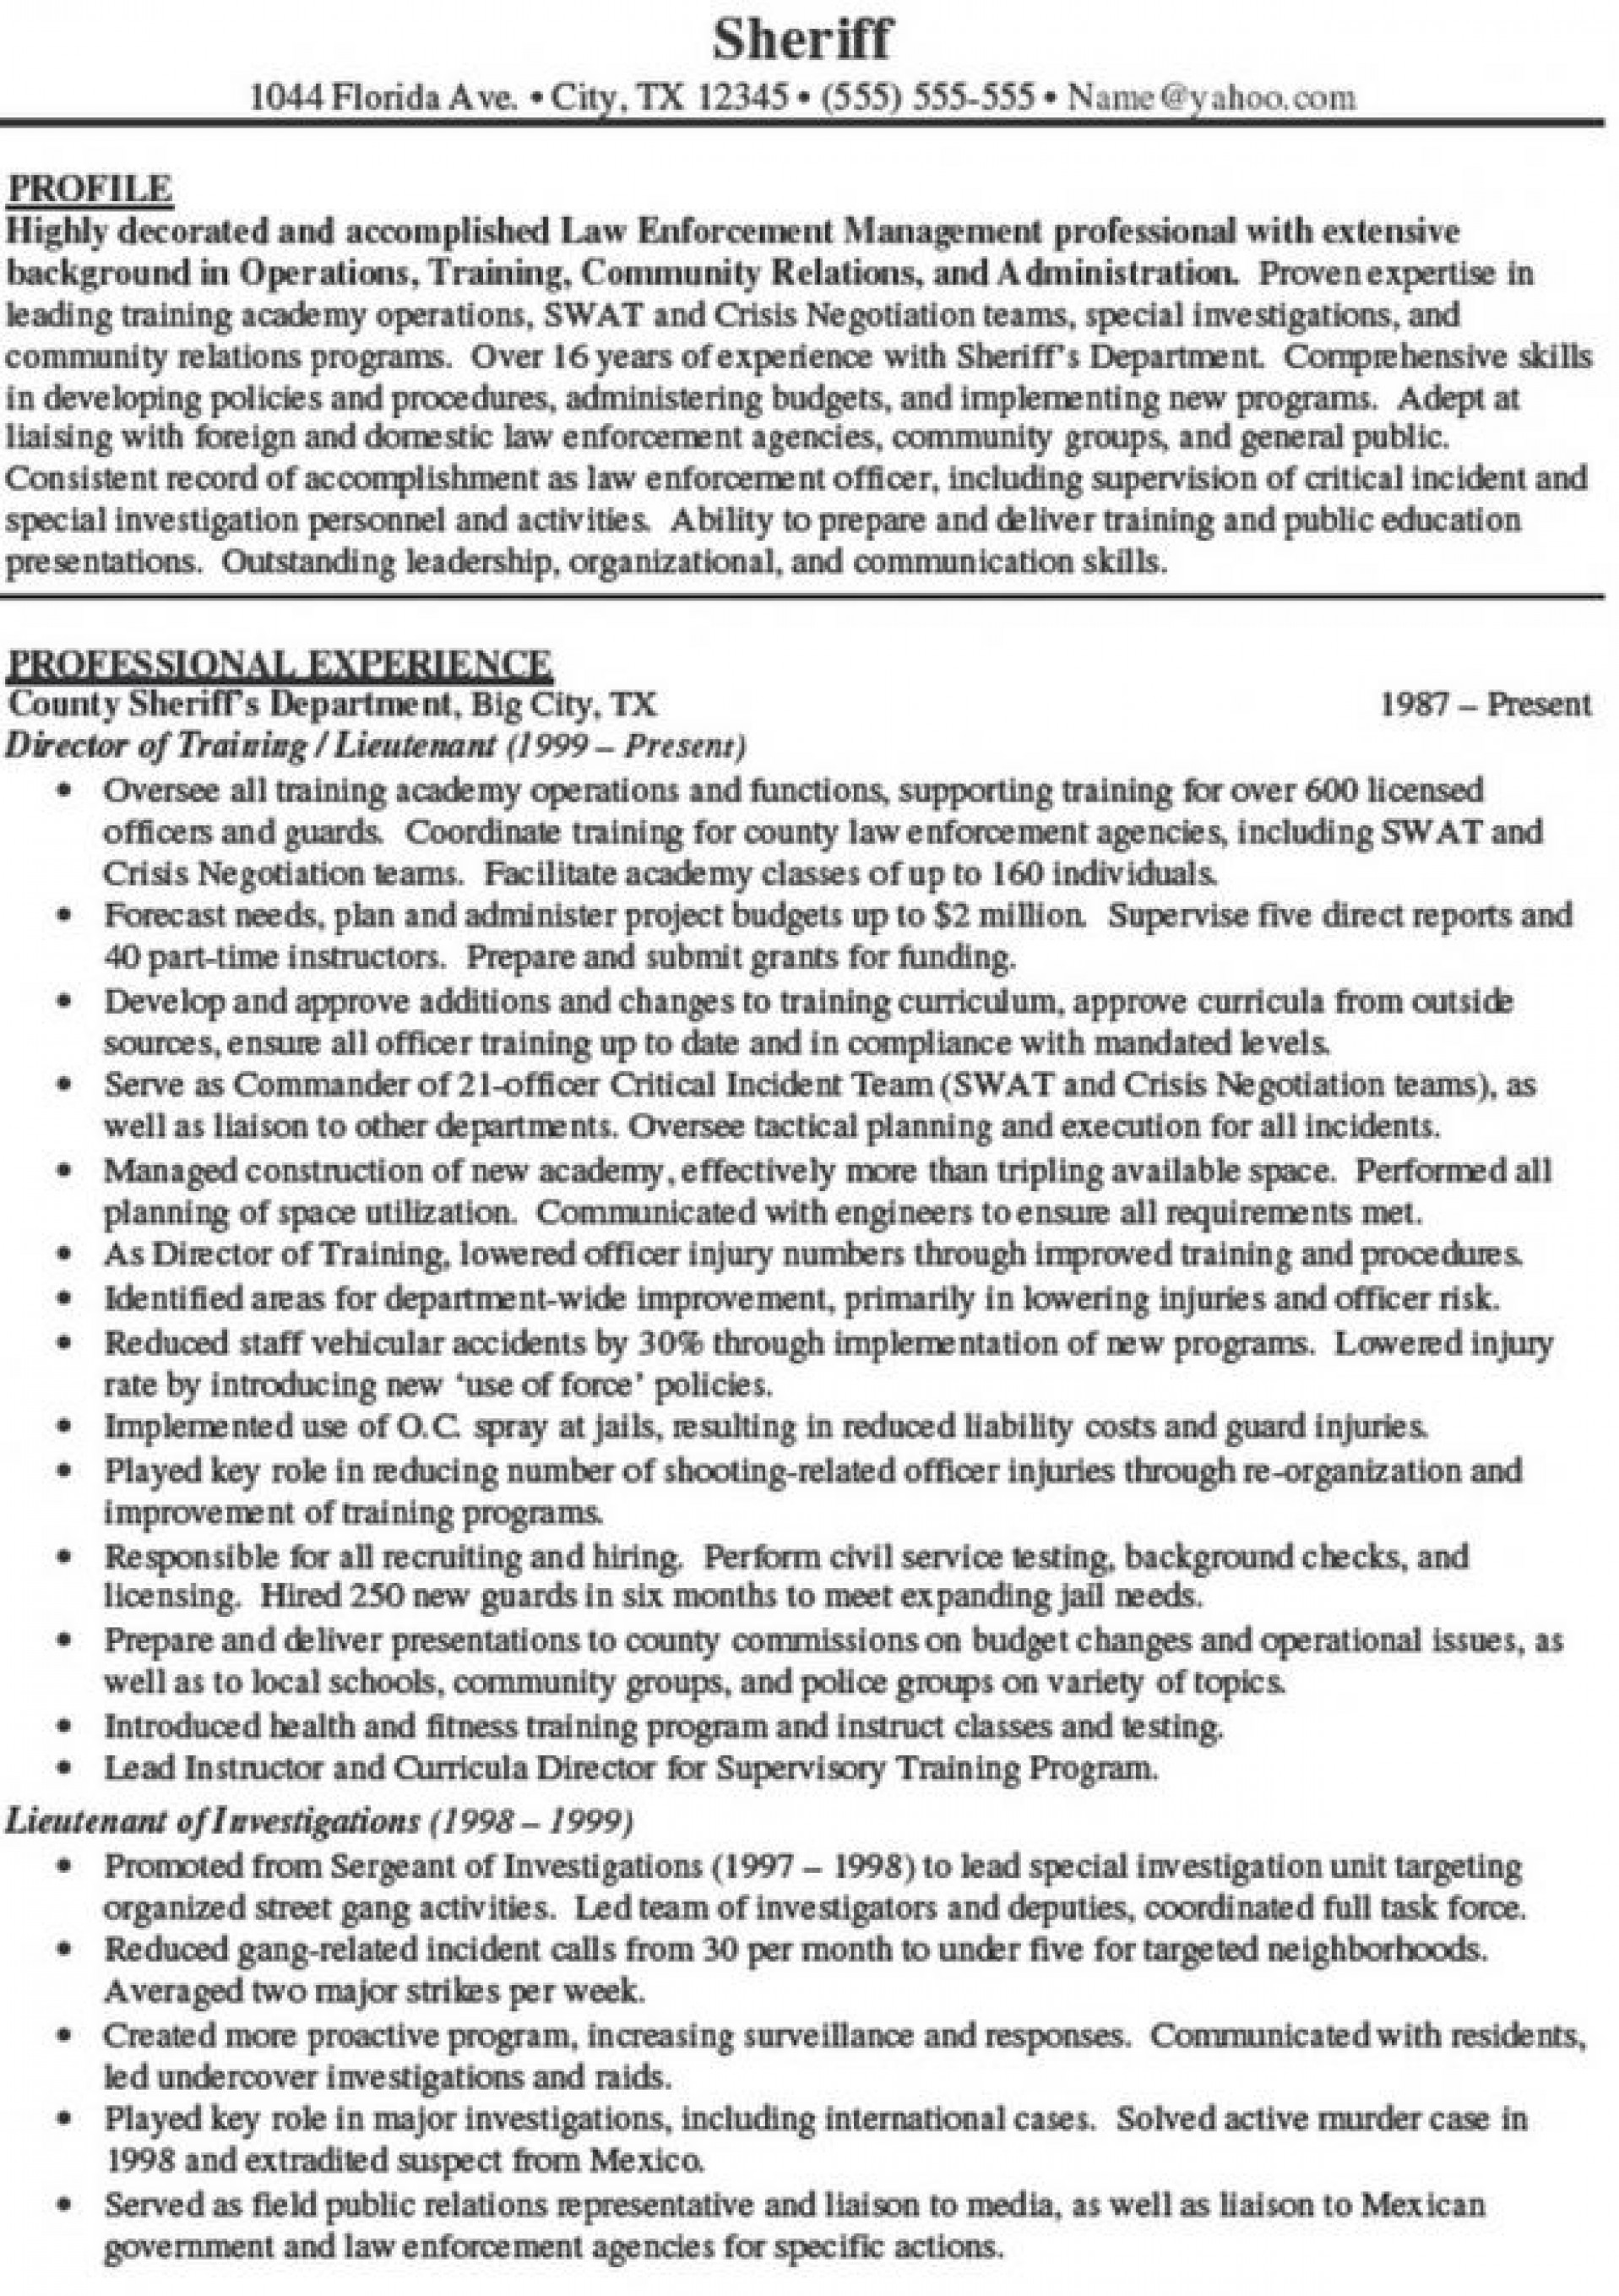 011 Law Resume Essay Example Harvard Imposing Supplement Word Count Supplemental Guide Format 1920